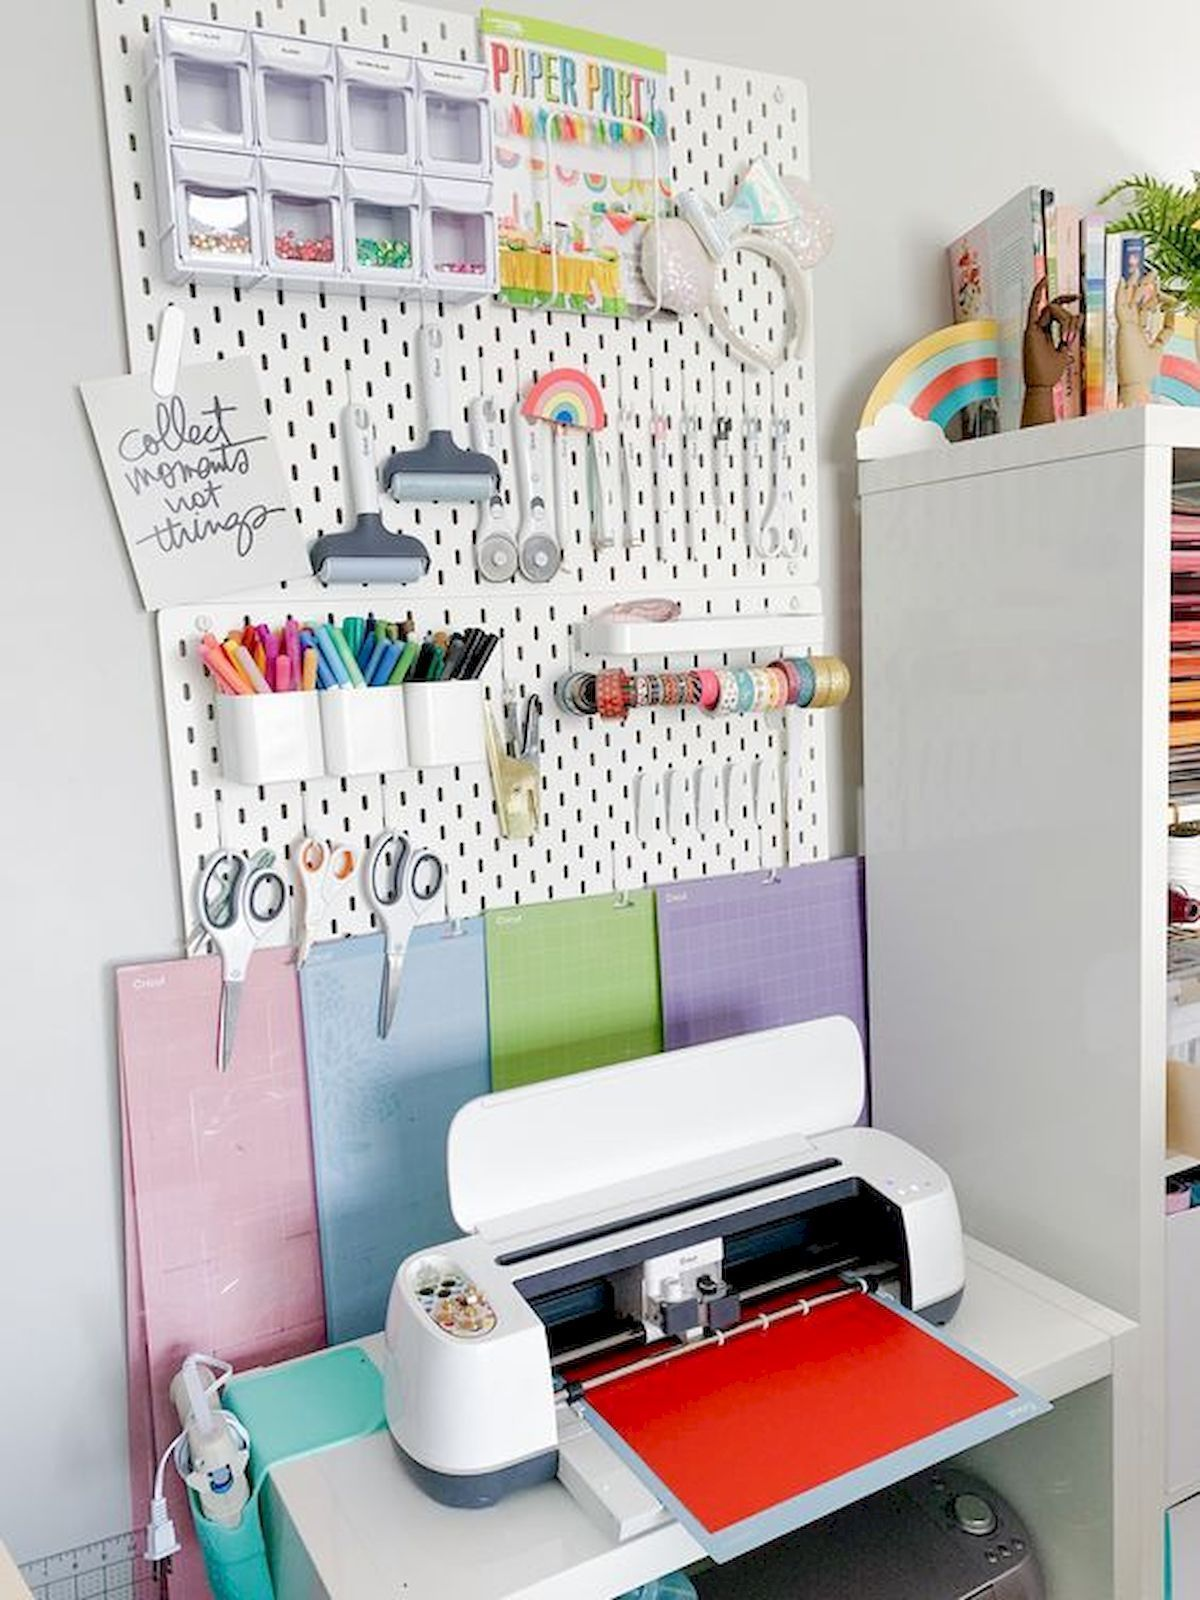 70 Favorite Craft Room Storage Solution (1)  Ideaboz is part of Craft room design - 70 Favorite Craft Room Storage Solution (1)